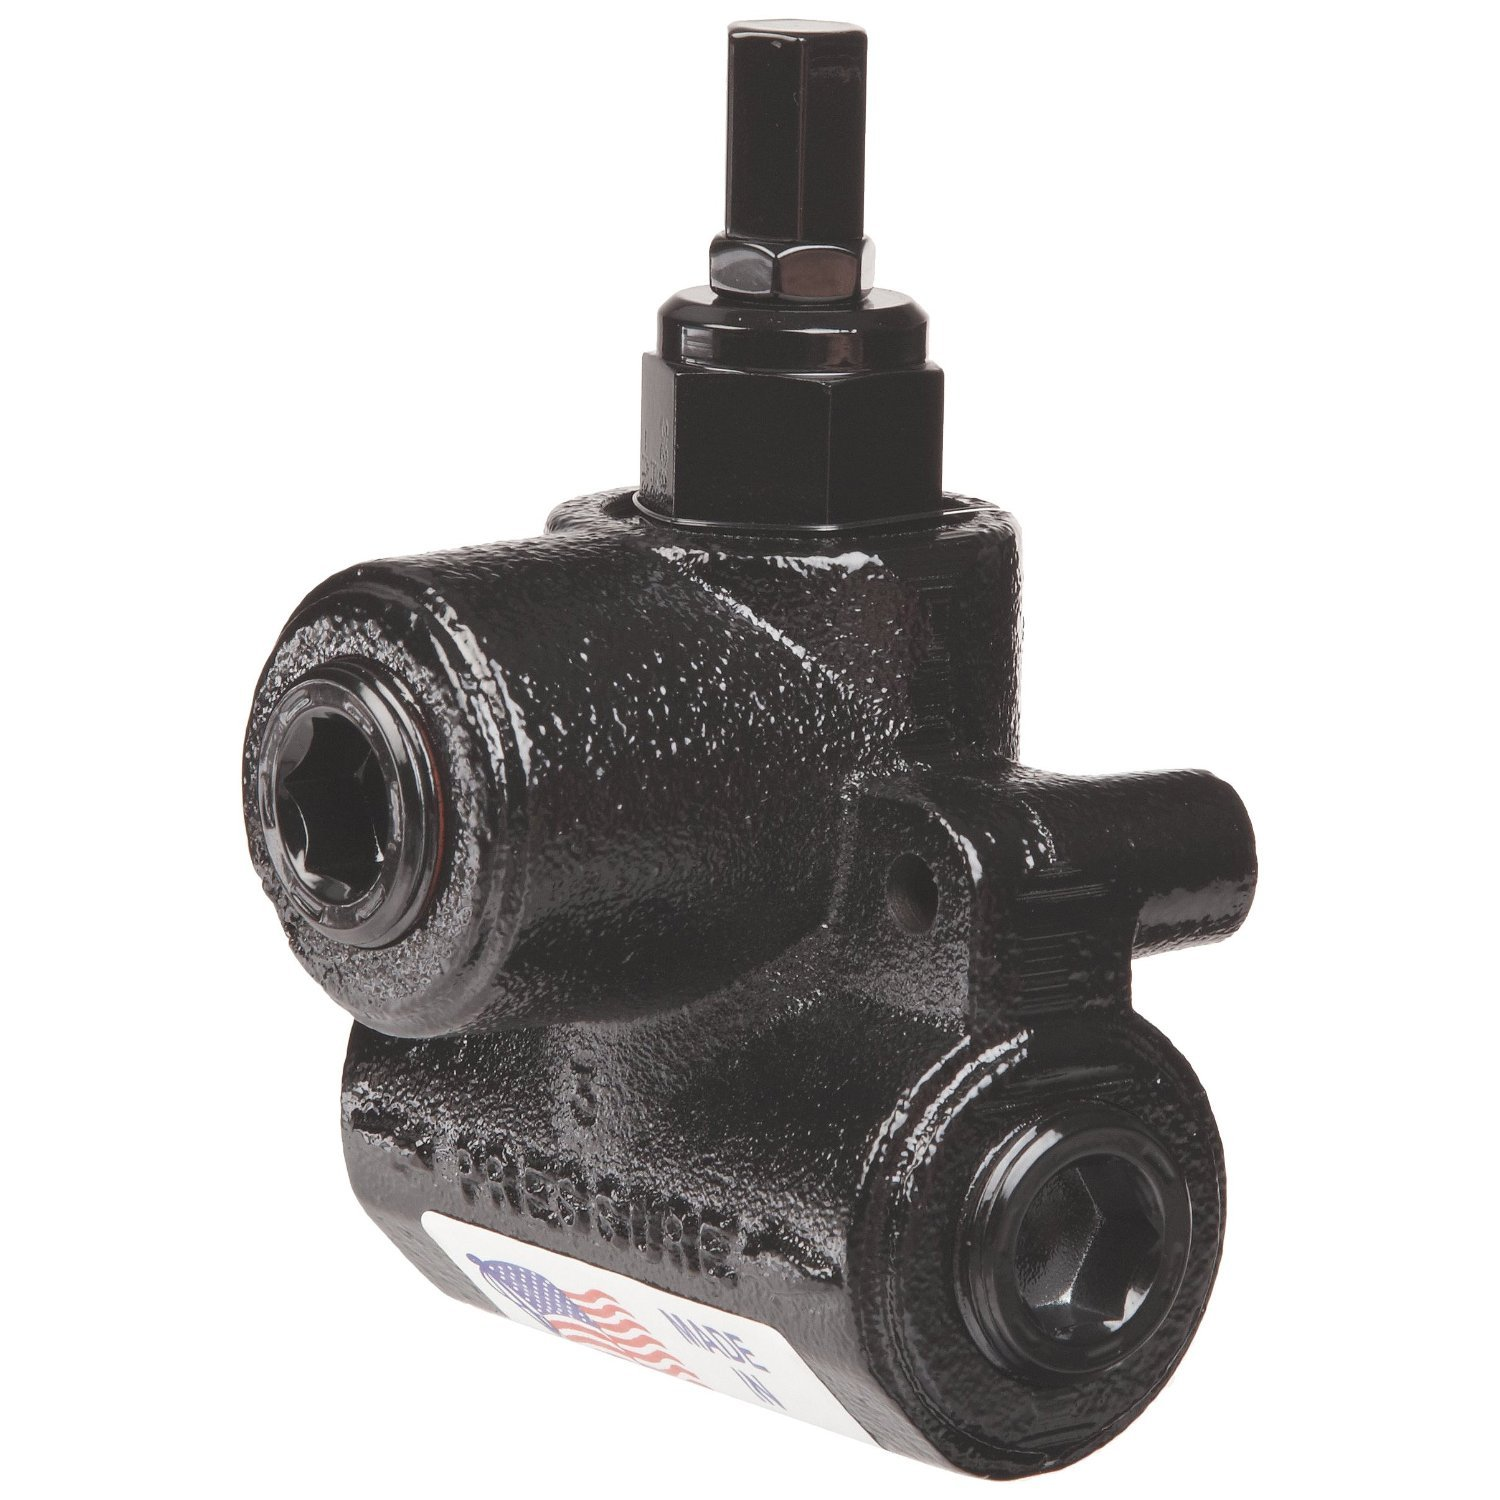 Prince RV Series Differential Poppet Line Relief Valve: Prince No. RV-1H, 1500-3000 PSI Adj. Range, SAE 12 Port Size, 2000 PSI Relief, 222784